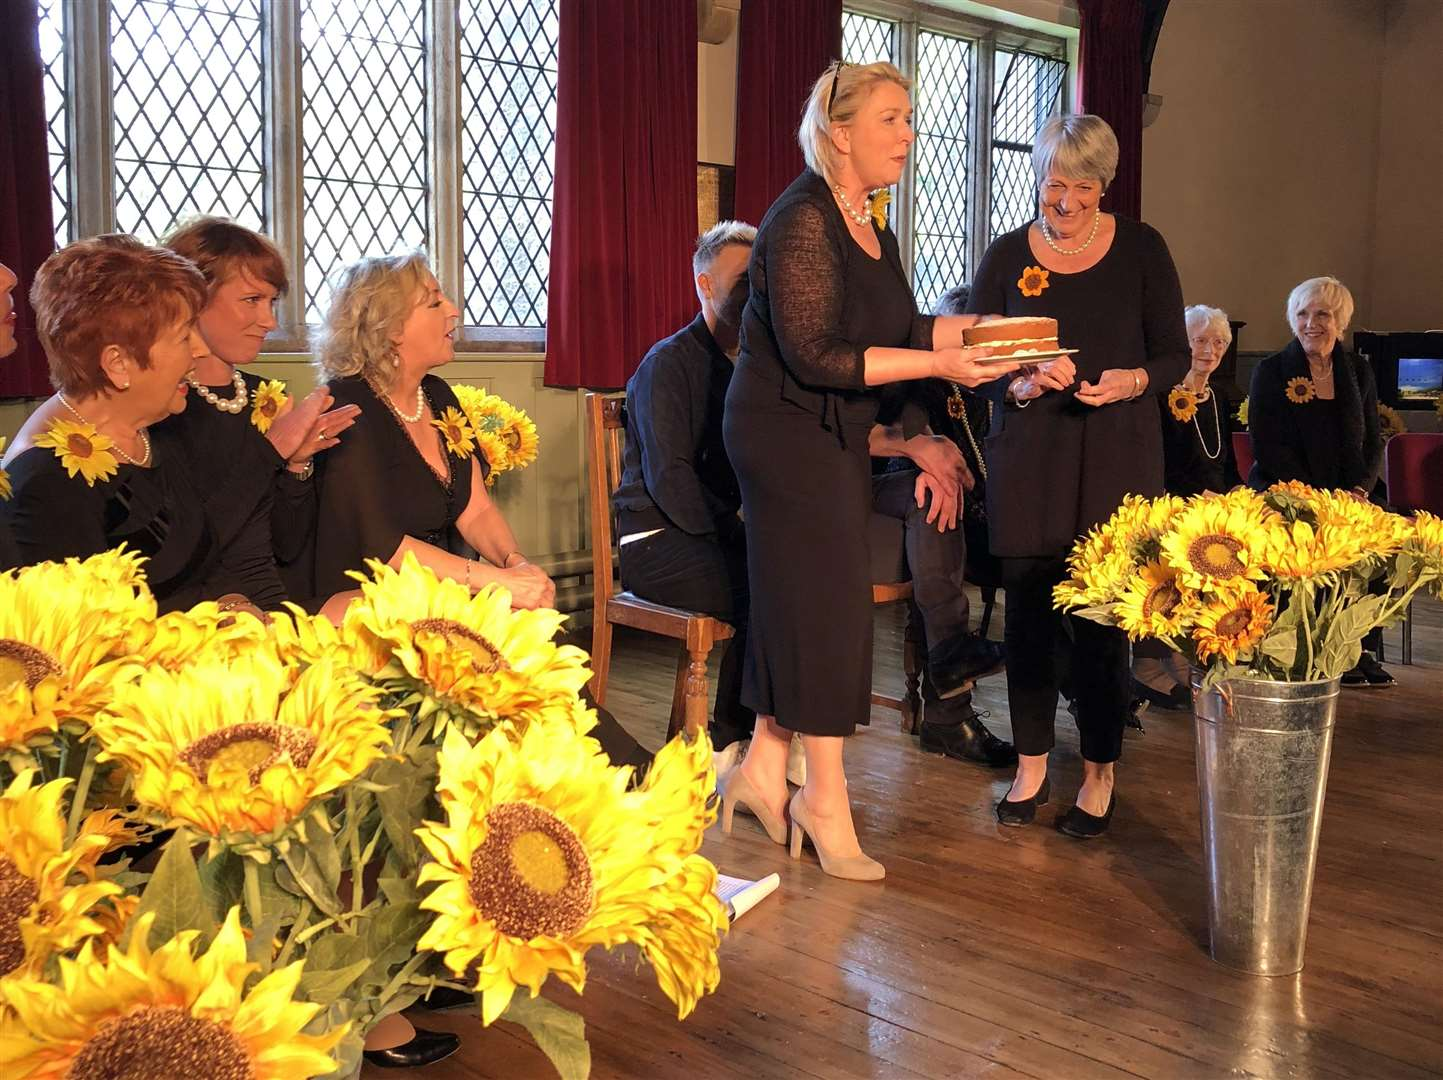 Fern Britton is presented with a cake by one of the original Calendar Girls (2043548)